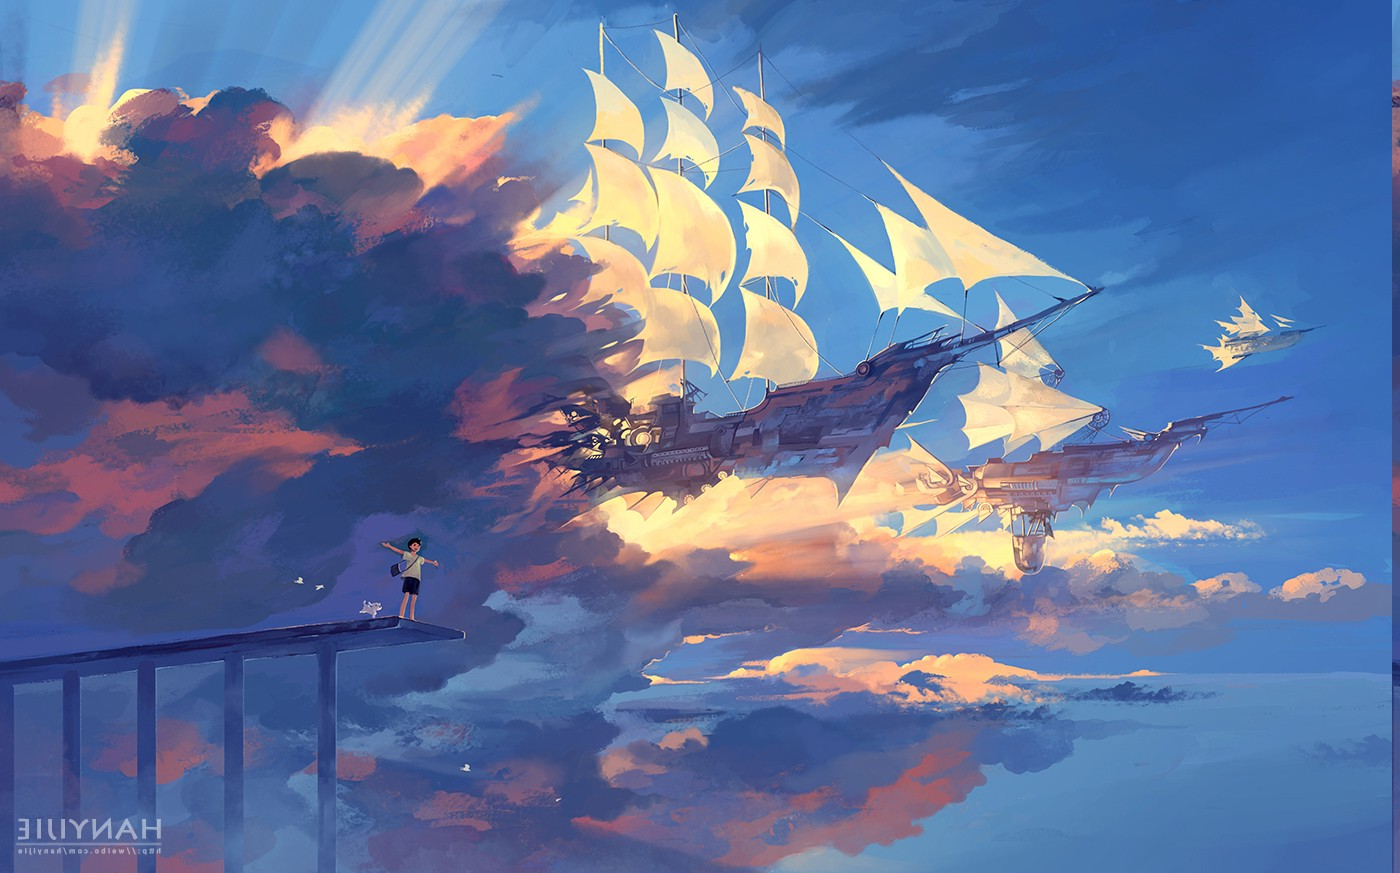 Bts Funny Quotes Wallpaper Anime Ship Clouds Sunlight Fantasy Art Wallpapers Hd